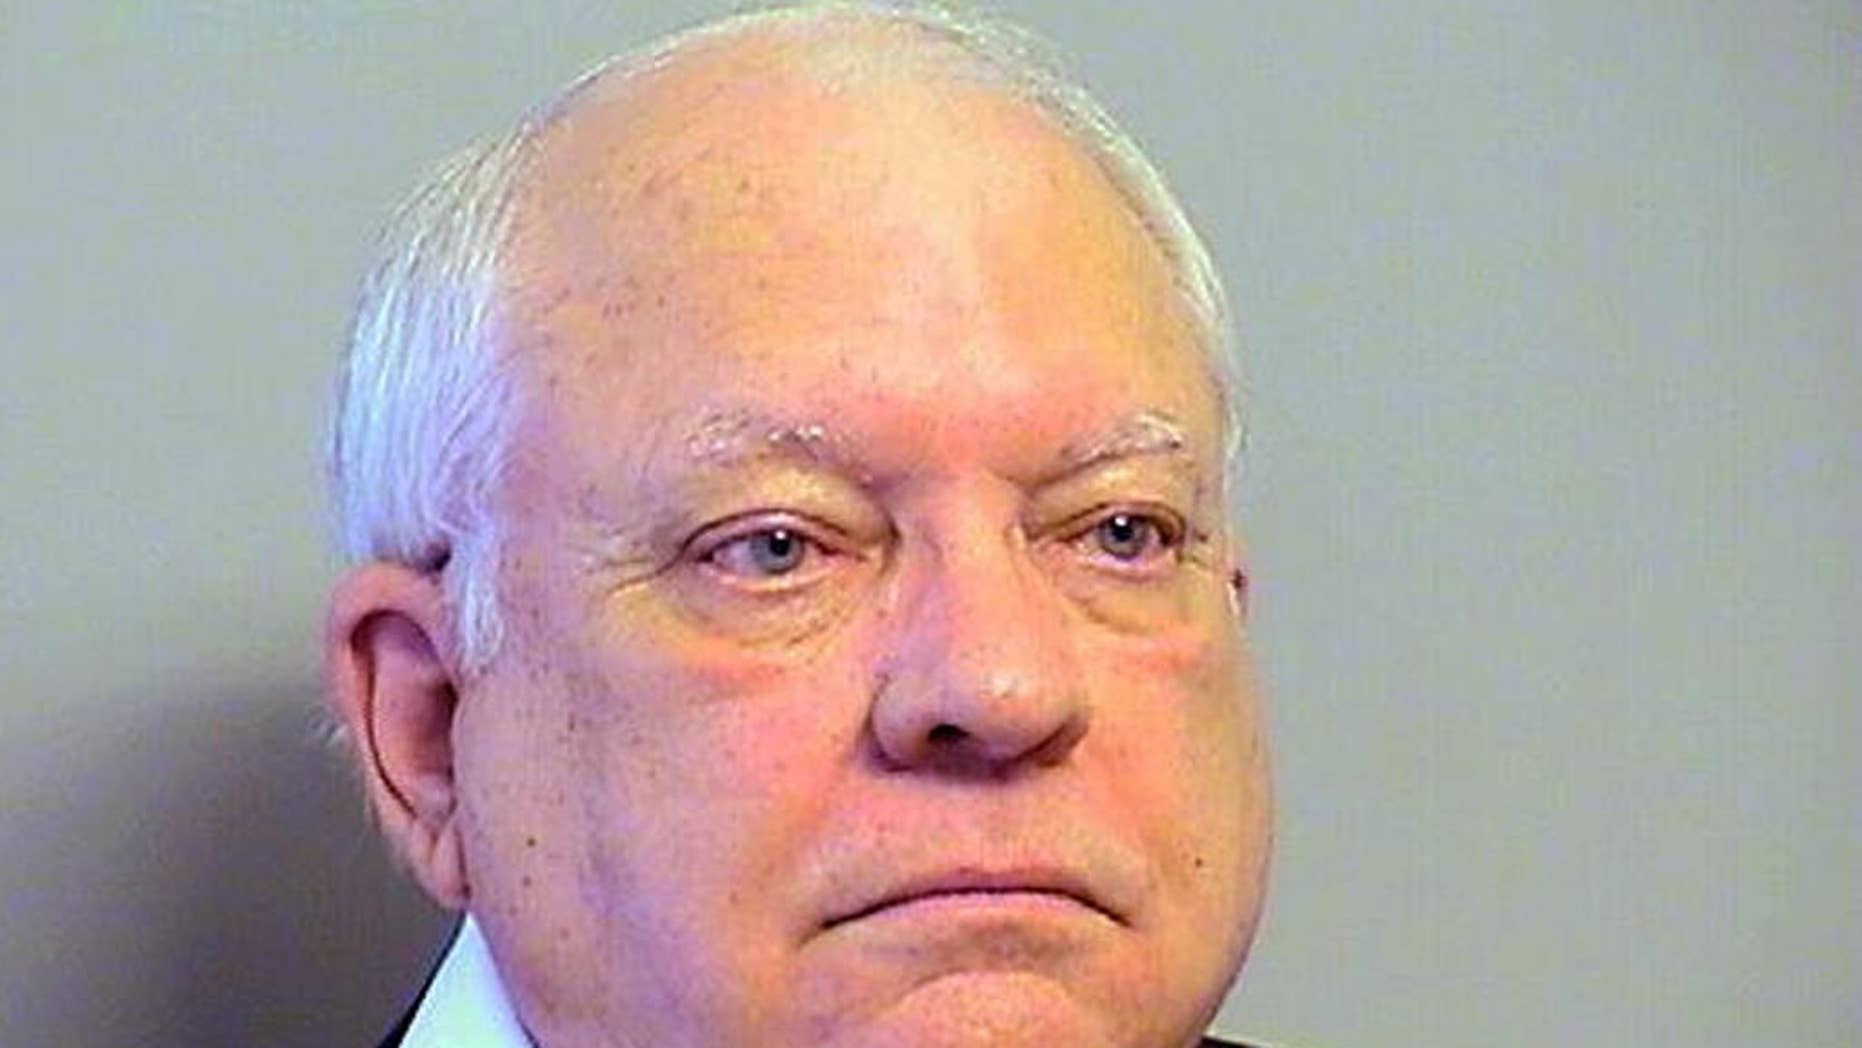 This Tuesday, April 14, 2015 photo provided by the Tulsa County, Oklahoma, Sheriff's Office shows Robert Bates. The 73-year-old Oklahoma reserve sheriff's deputy, who authorities said fatally shot a suspect after confusing his stun gun and handgun, was booked into the county jail Tuesday on a manslaughter charge. Bates surrendered to the Tulsa County Jail and was released after posting $25,000 bond. (Tulsa County Sheriff's Office via AP)